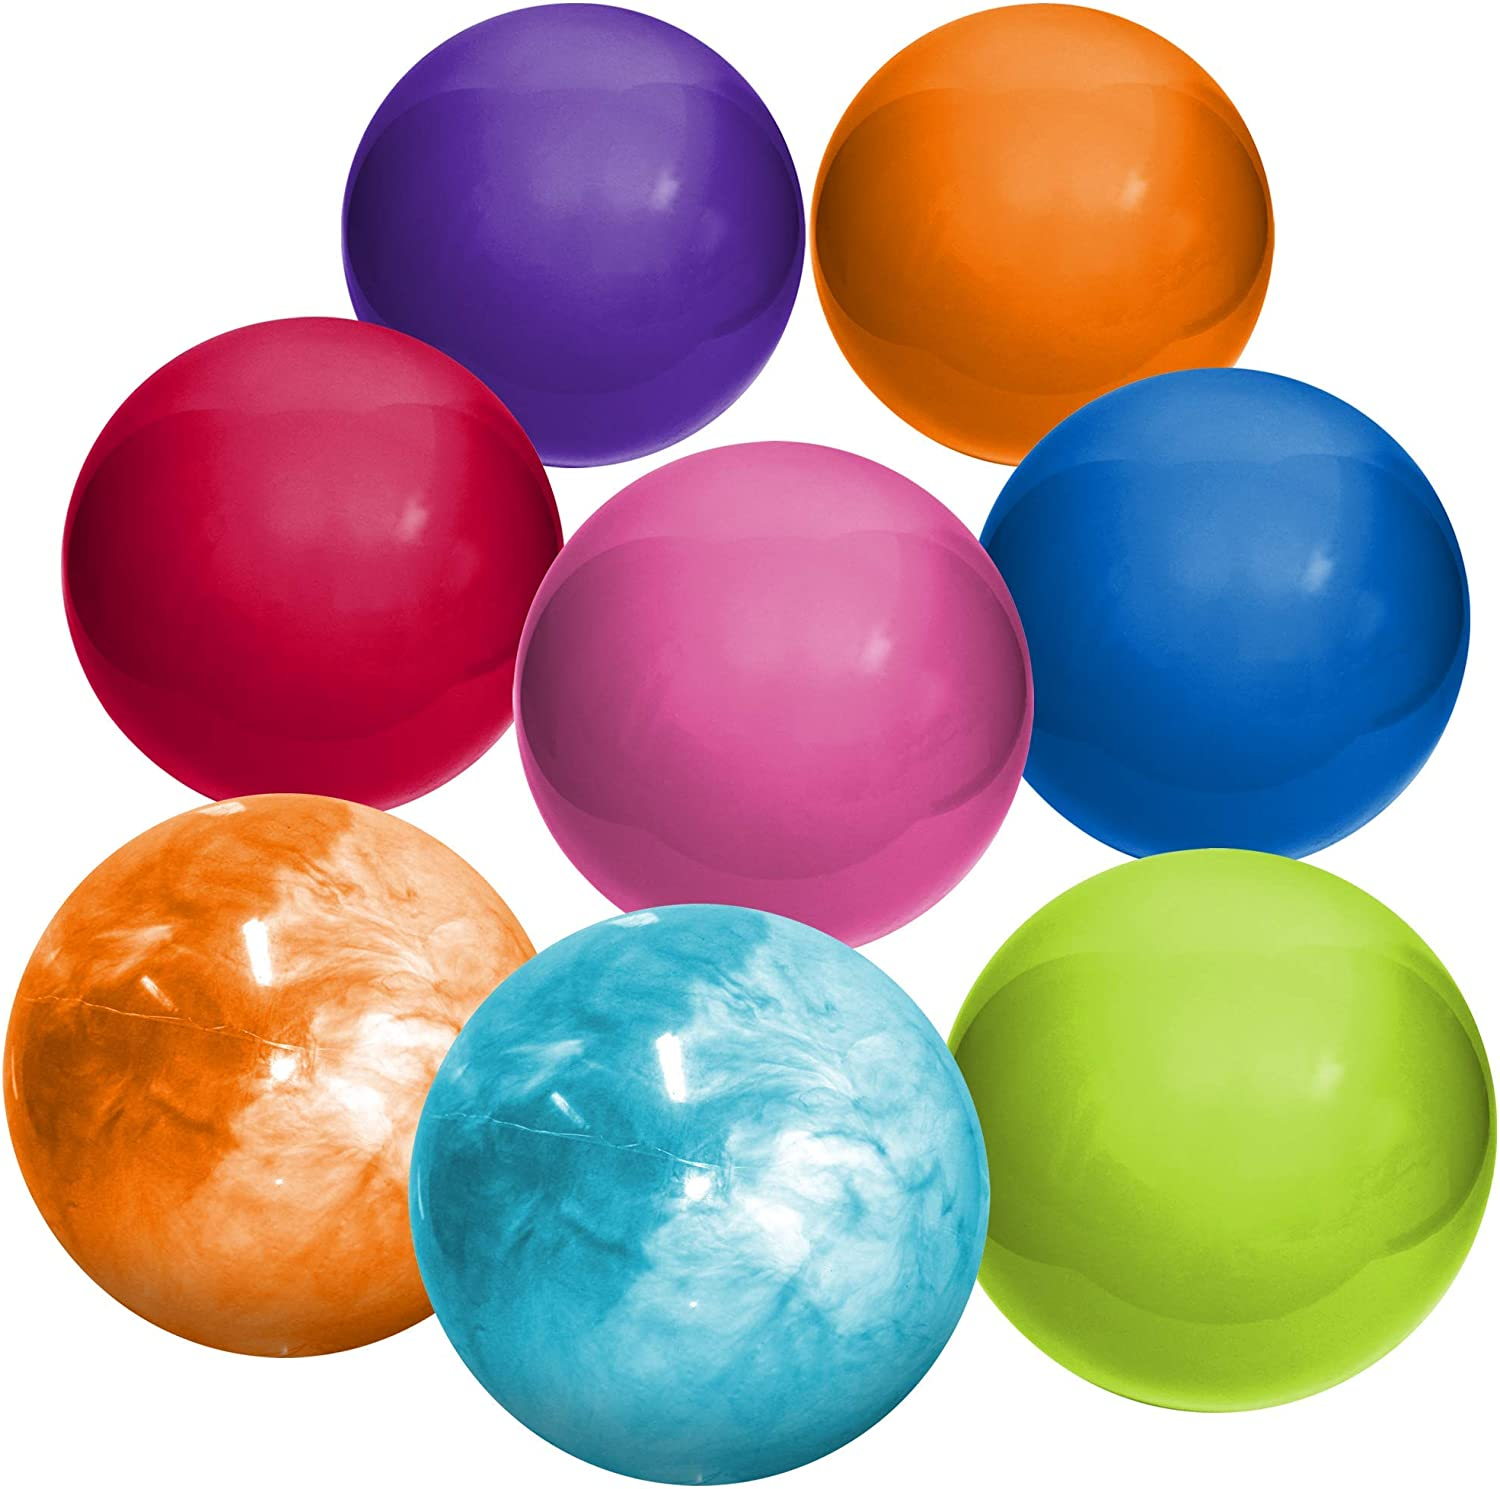 Hedstrom Multi-Color Assortment of Large Playballs Indoor/Outdoor Playballs, Multi